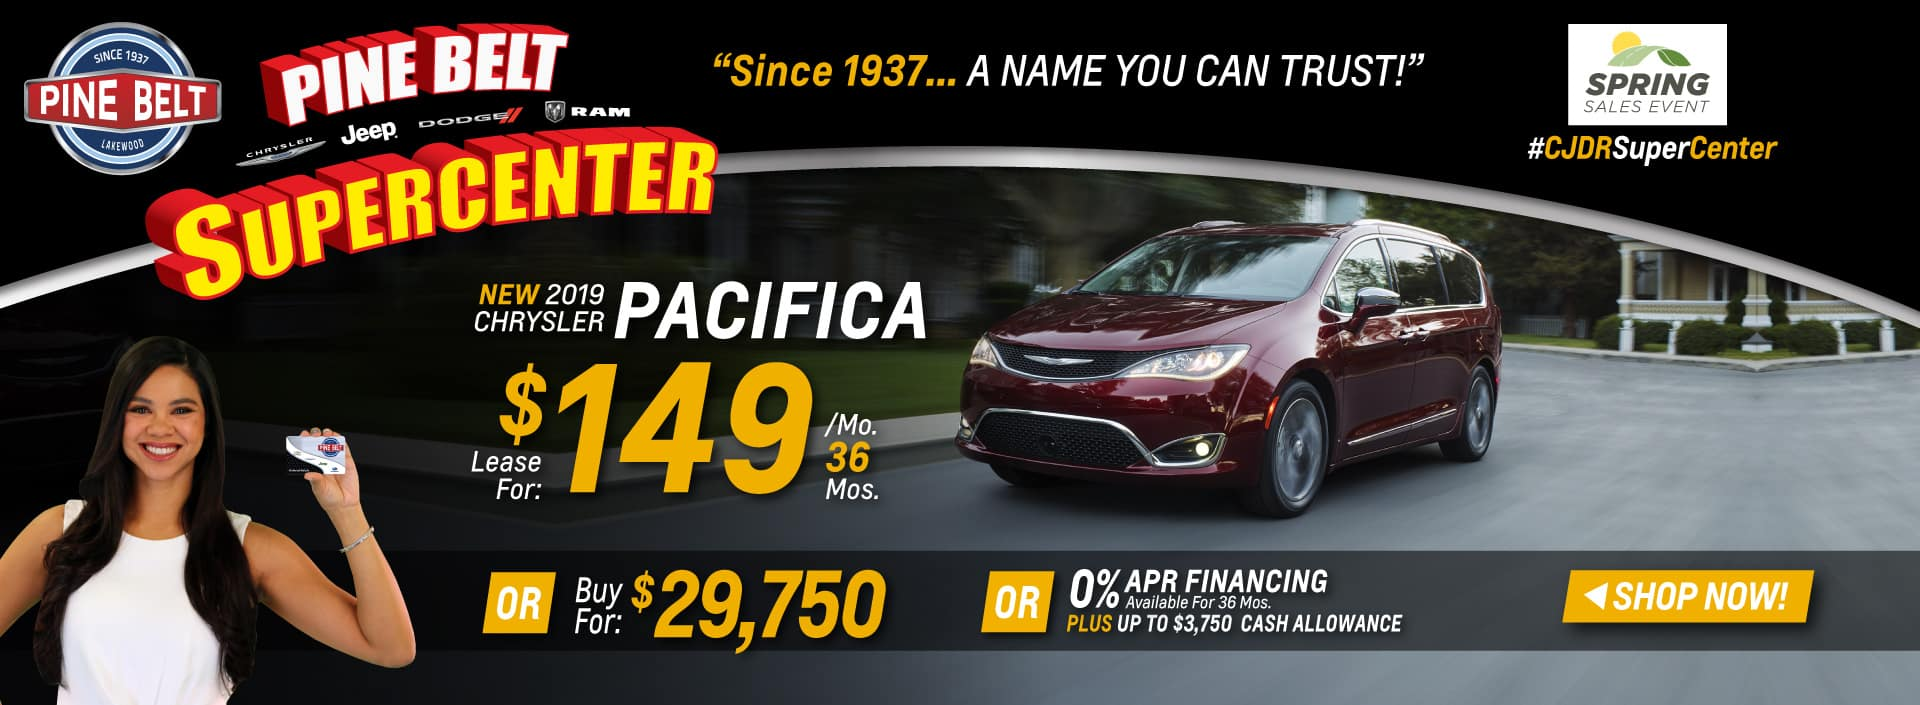 2019 Chrysler Pacifica Sales Deals or Specials in NJ